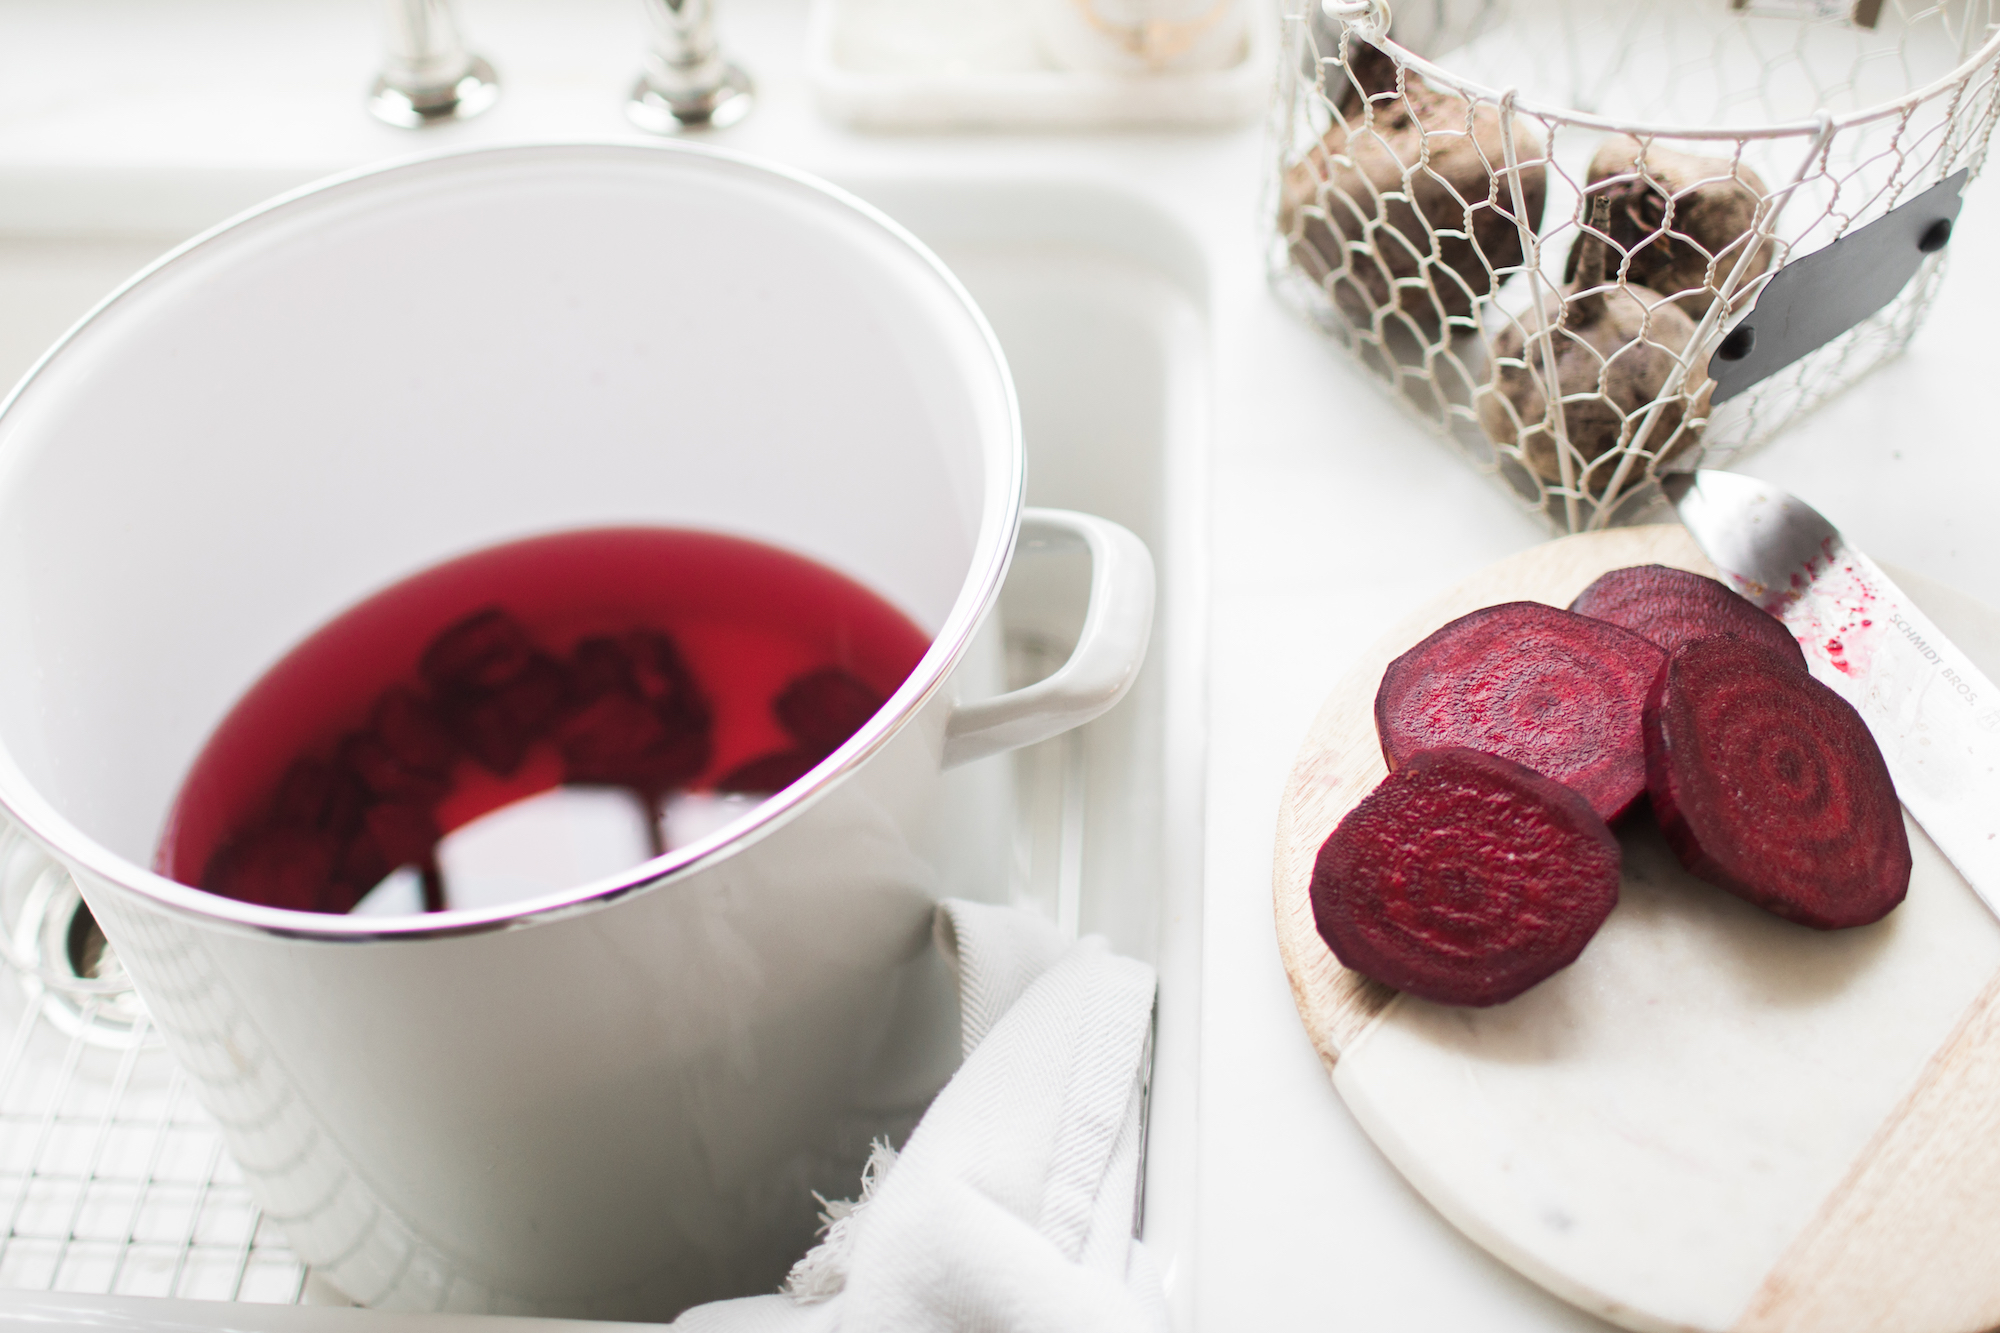 natural linens dyed with beets